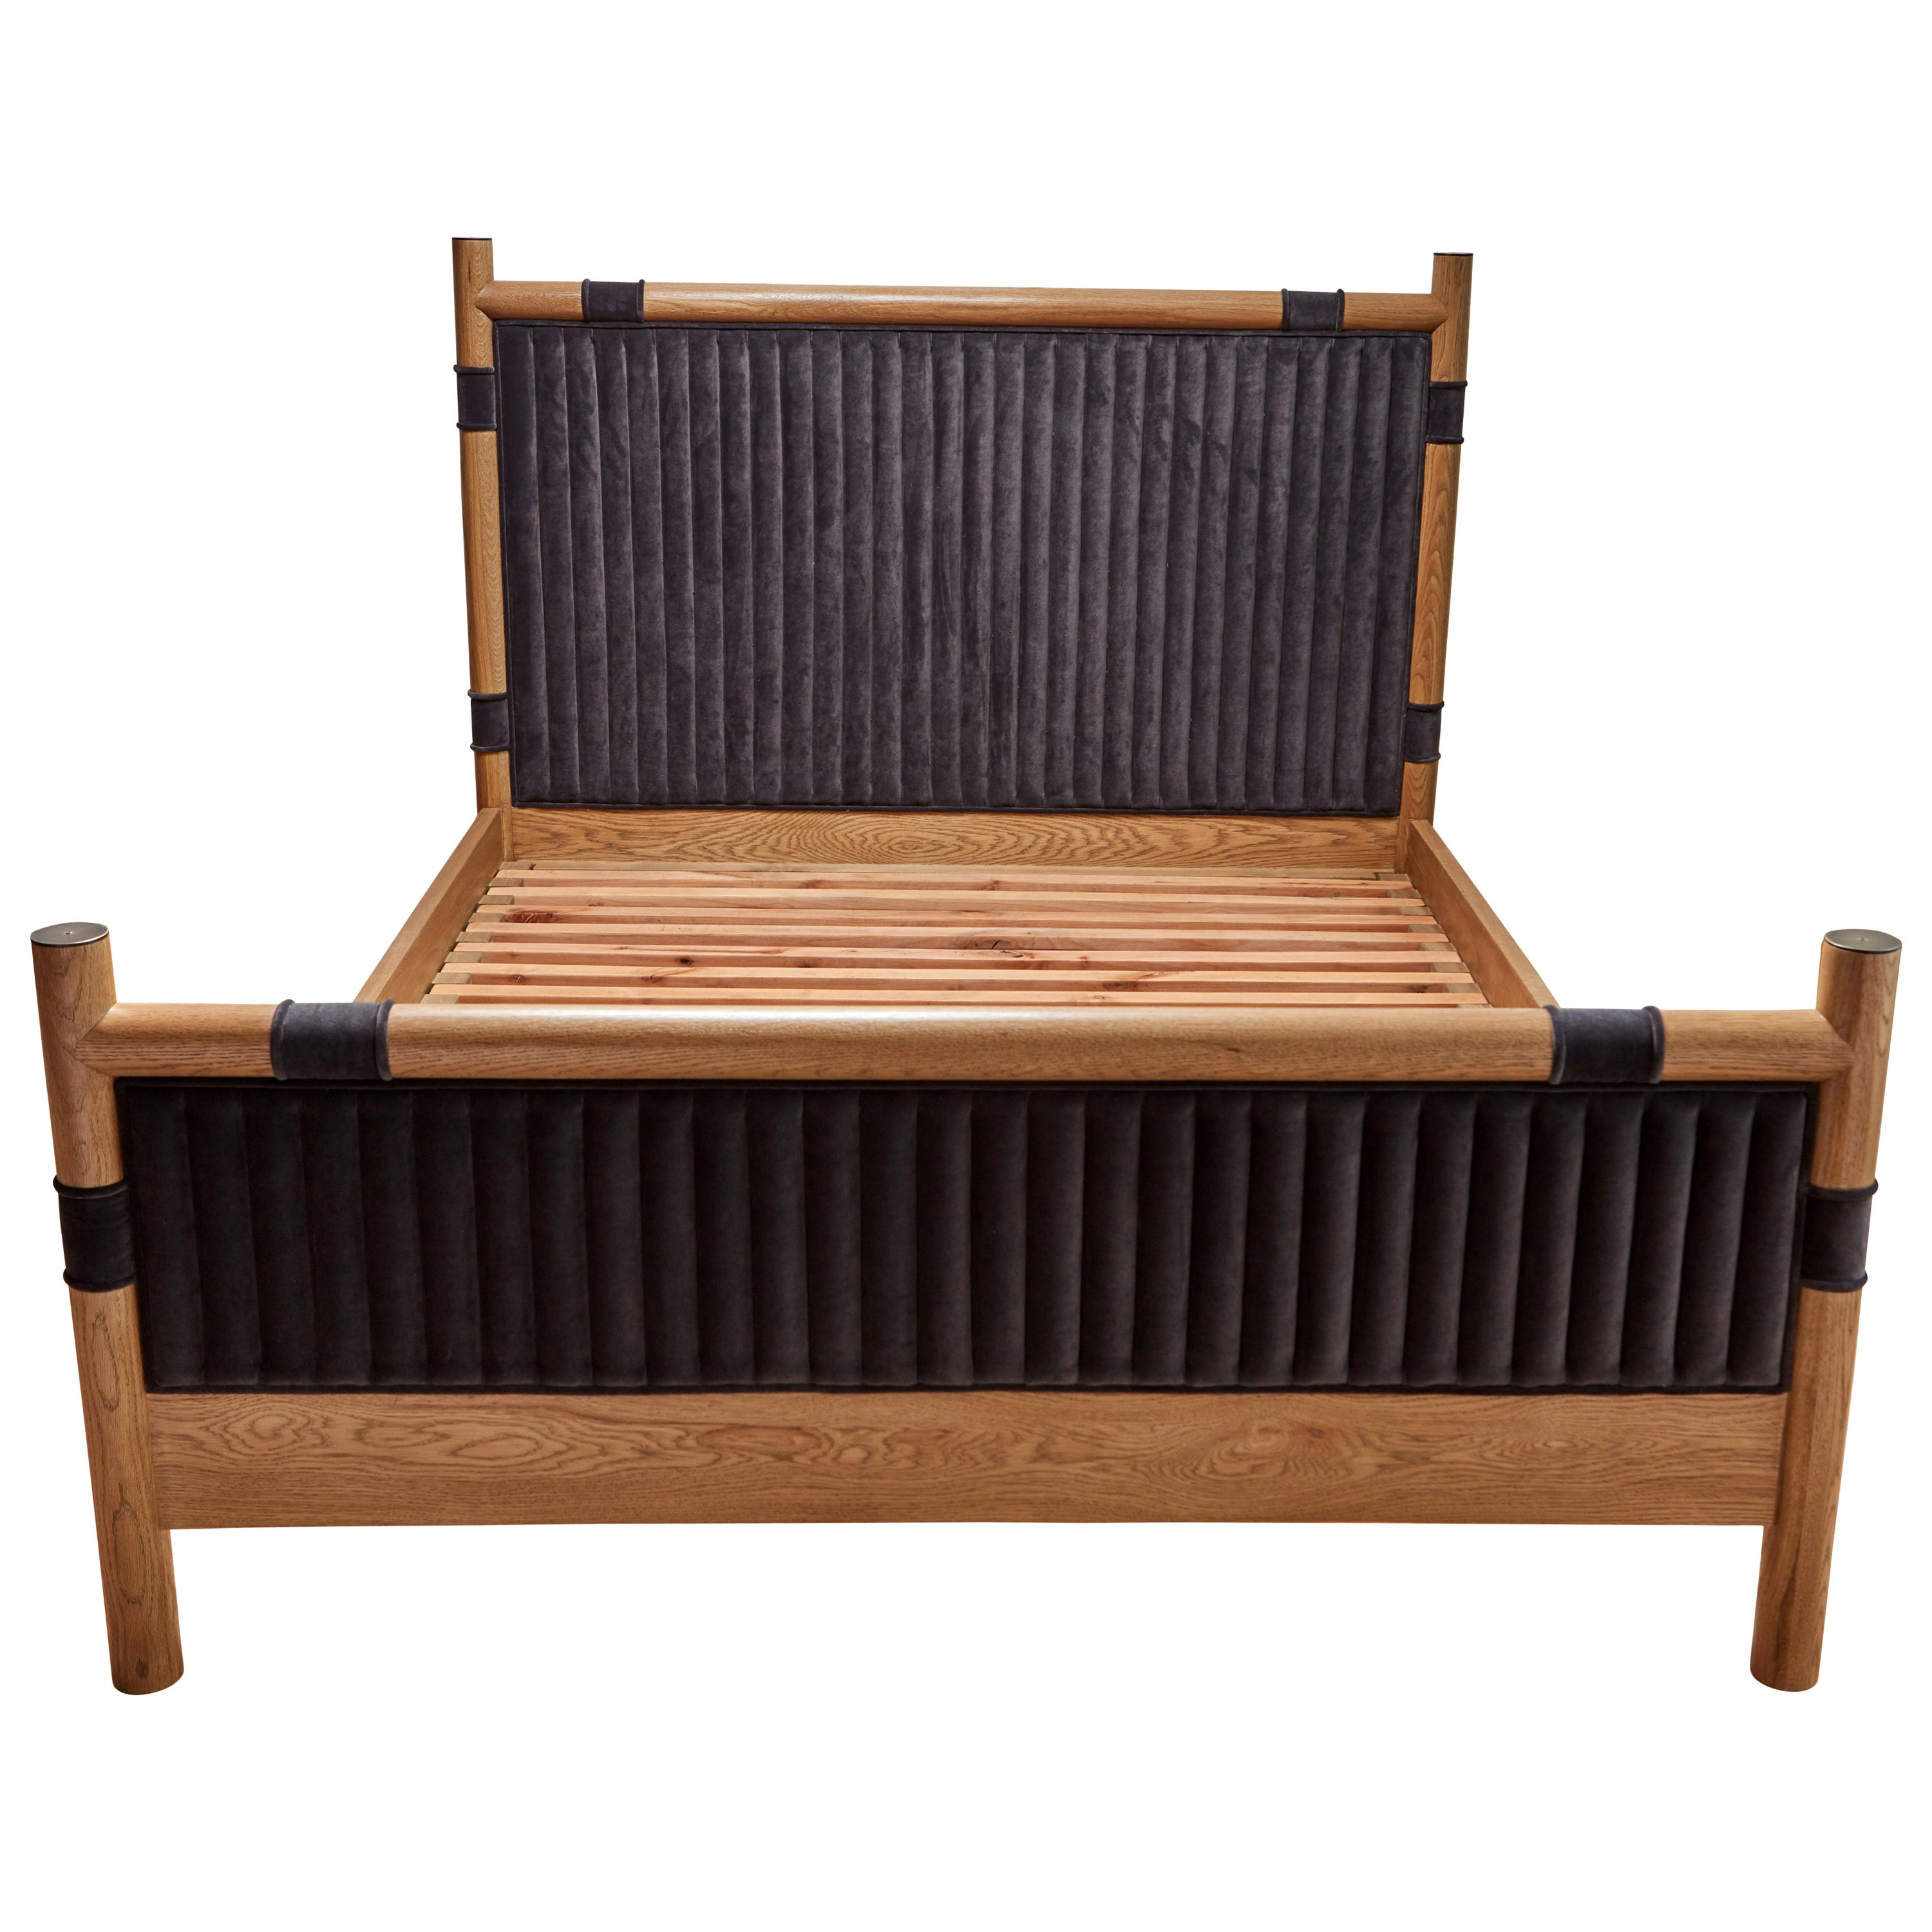 Oak and Velvet Channel Tufted Chiselhurst Bed by Lawson-Fenning, Queen